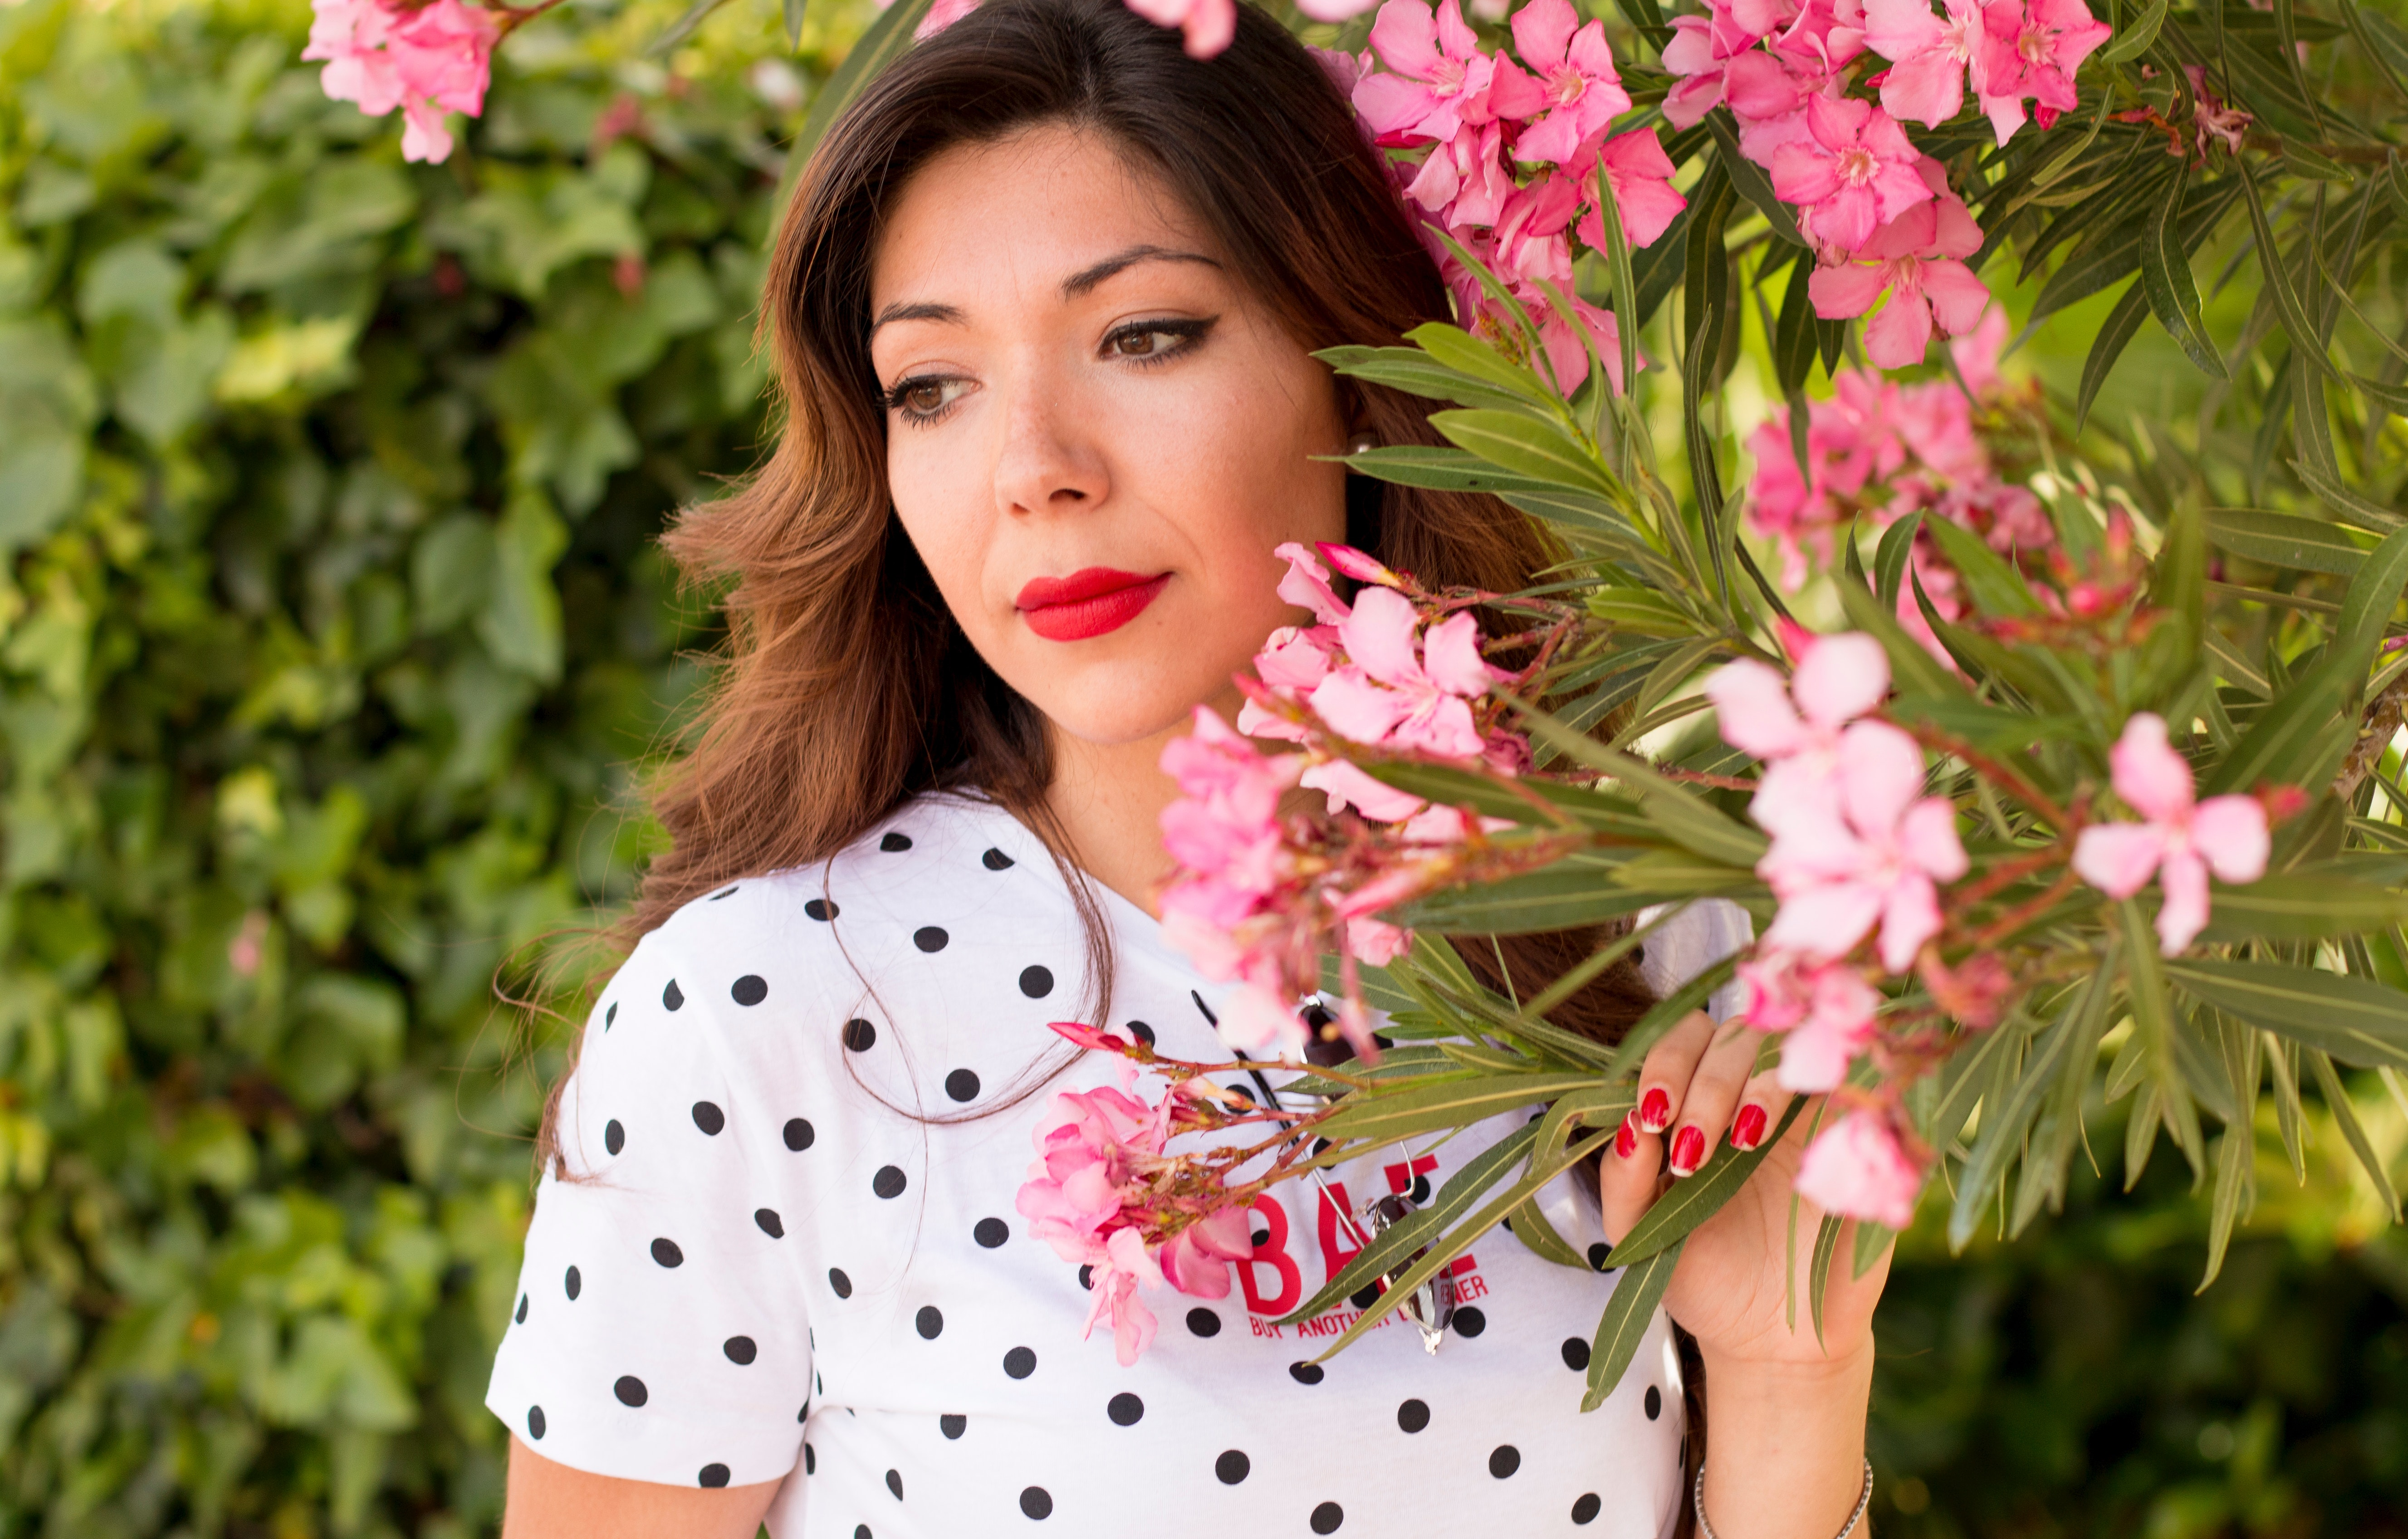 Woman in white and black polka dots dress near pink flowers during daylight photo